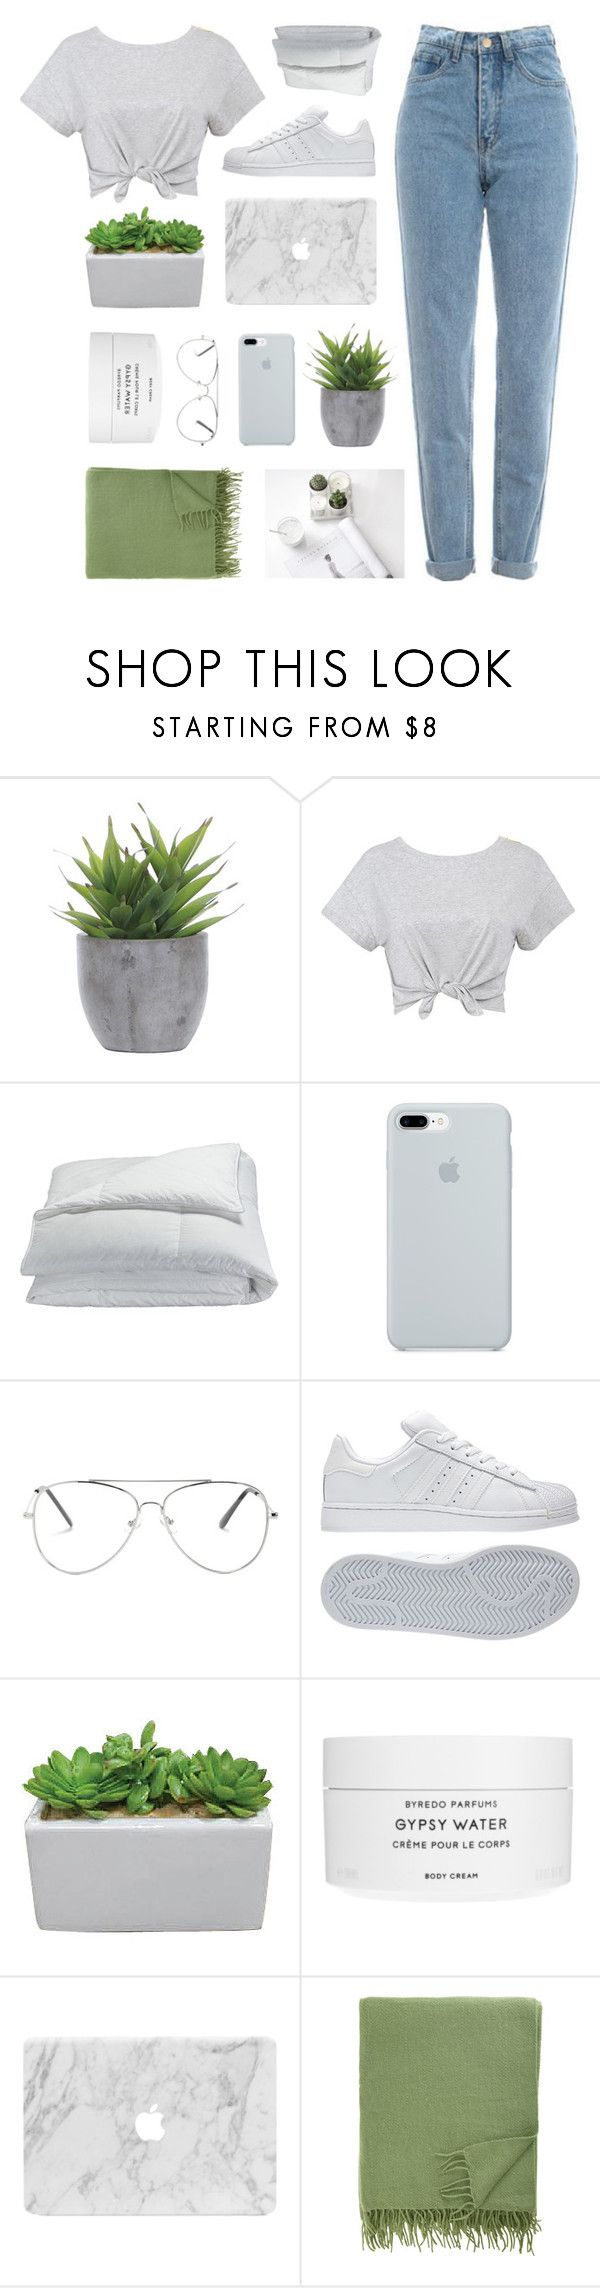 """//serendipity//"" by lion-smile ❤ liked on Polyvore featuring Lux-Art Silks, WALL, Frette, ETUÍ, adidas, Byredo and Armand Diradourian"